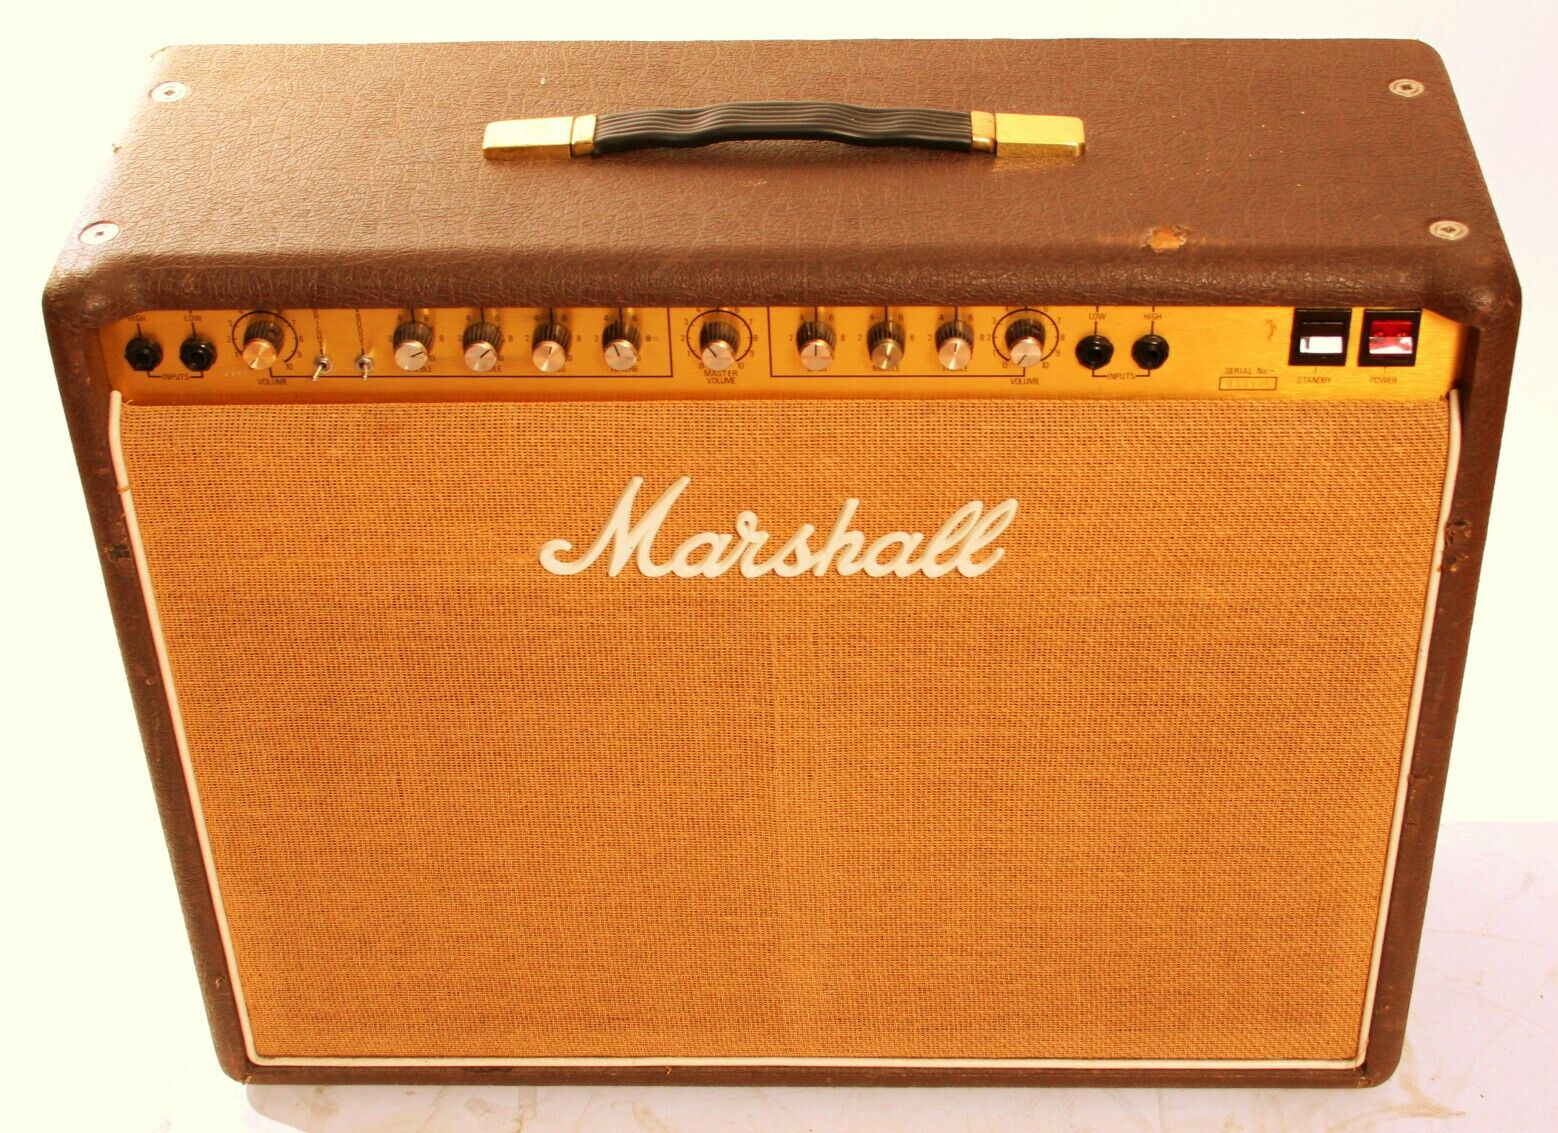 1969 vintage marshall 4x12 1960a celestion plexi cabinet > speaker 1978 marshall 4140 club country 100 watt combo w two kt77